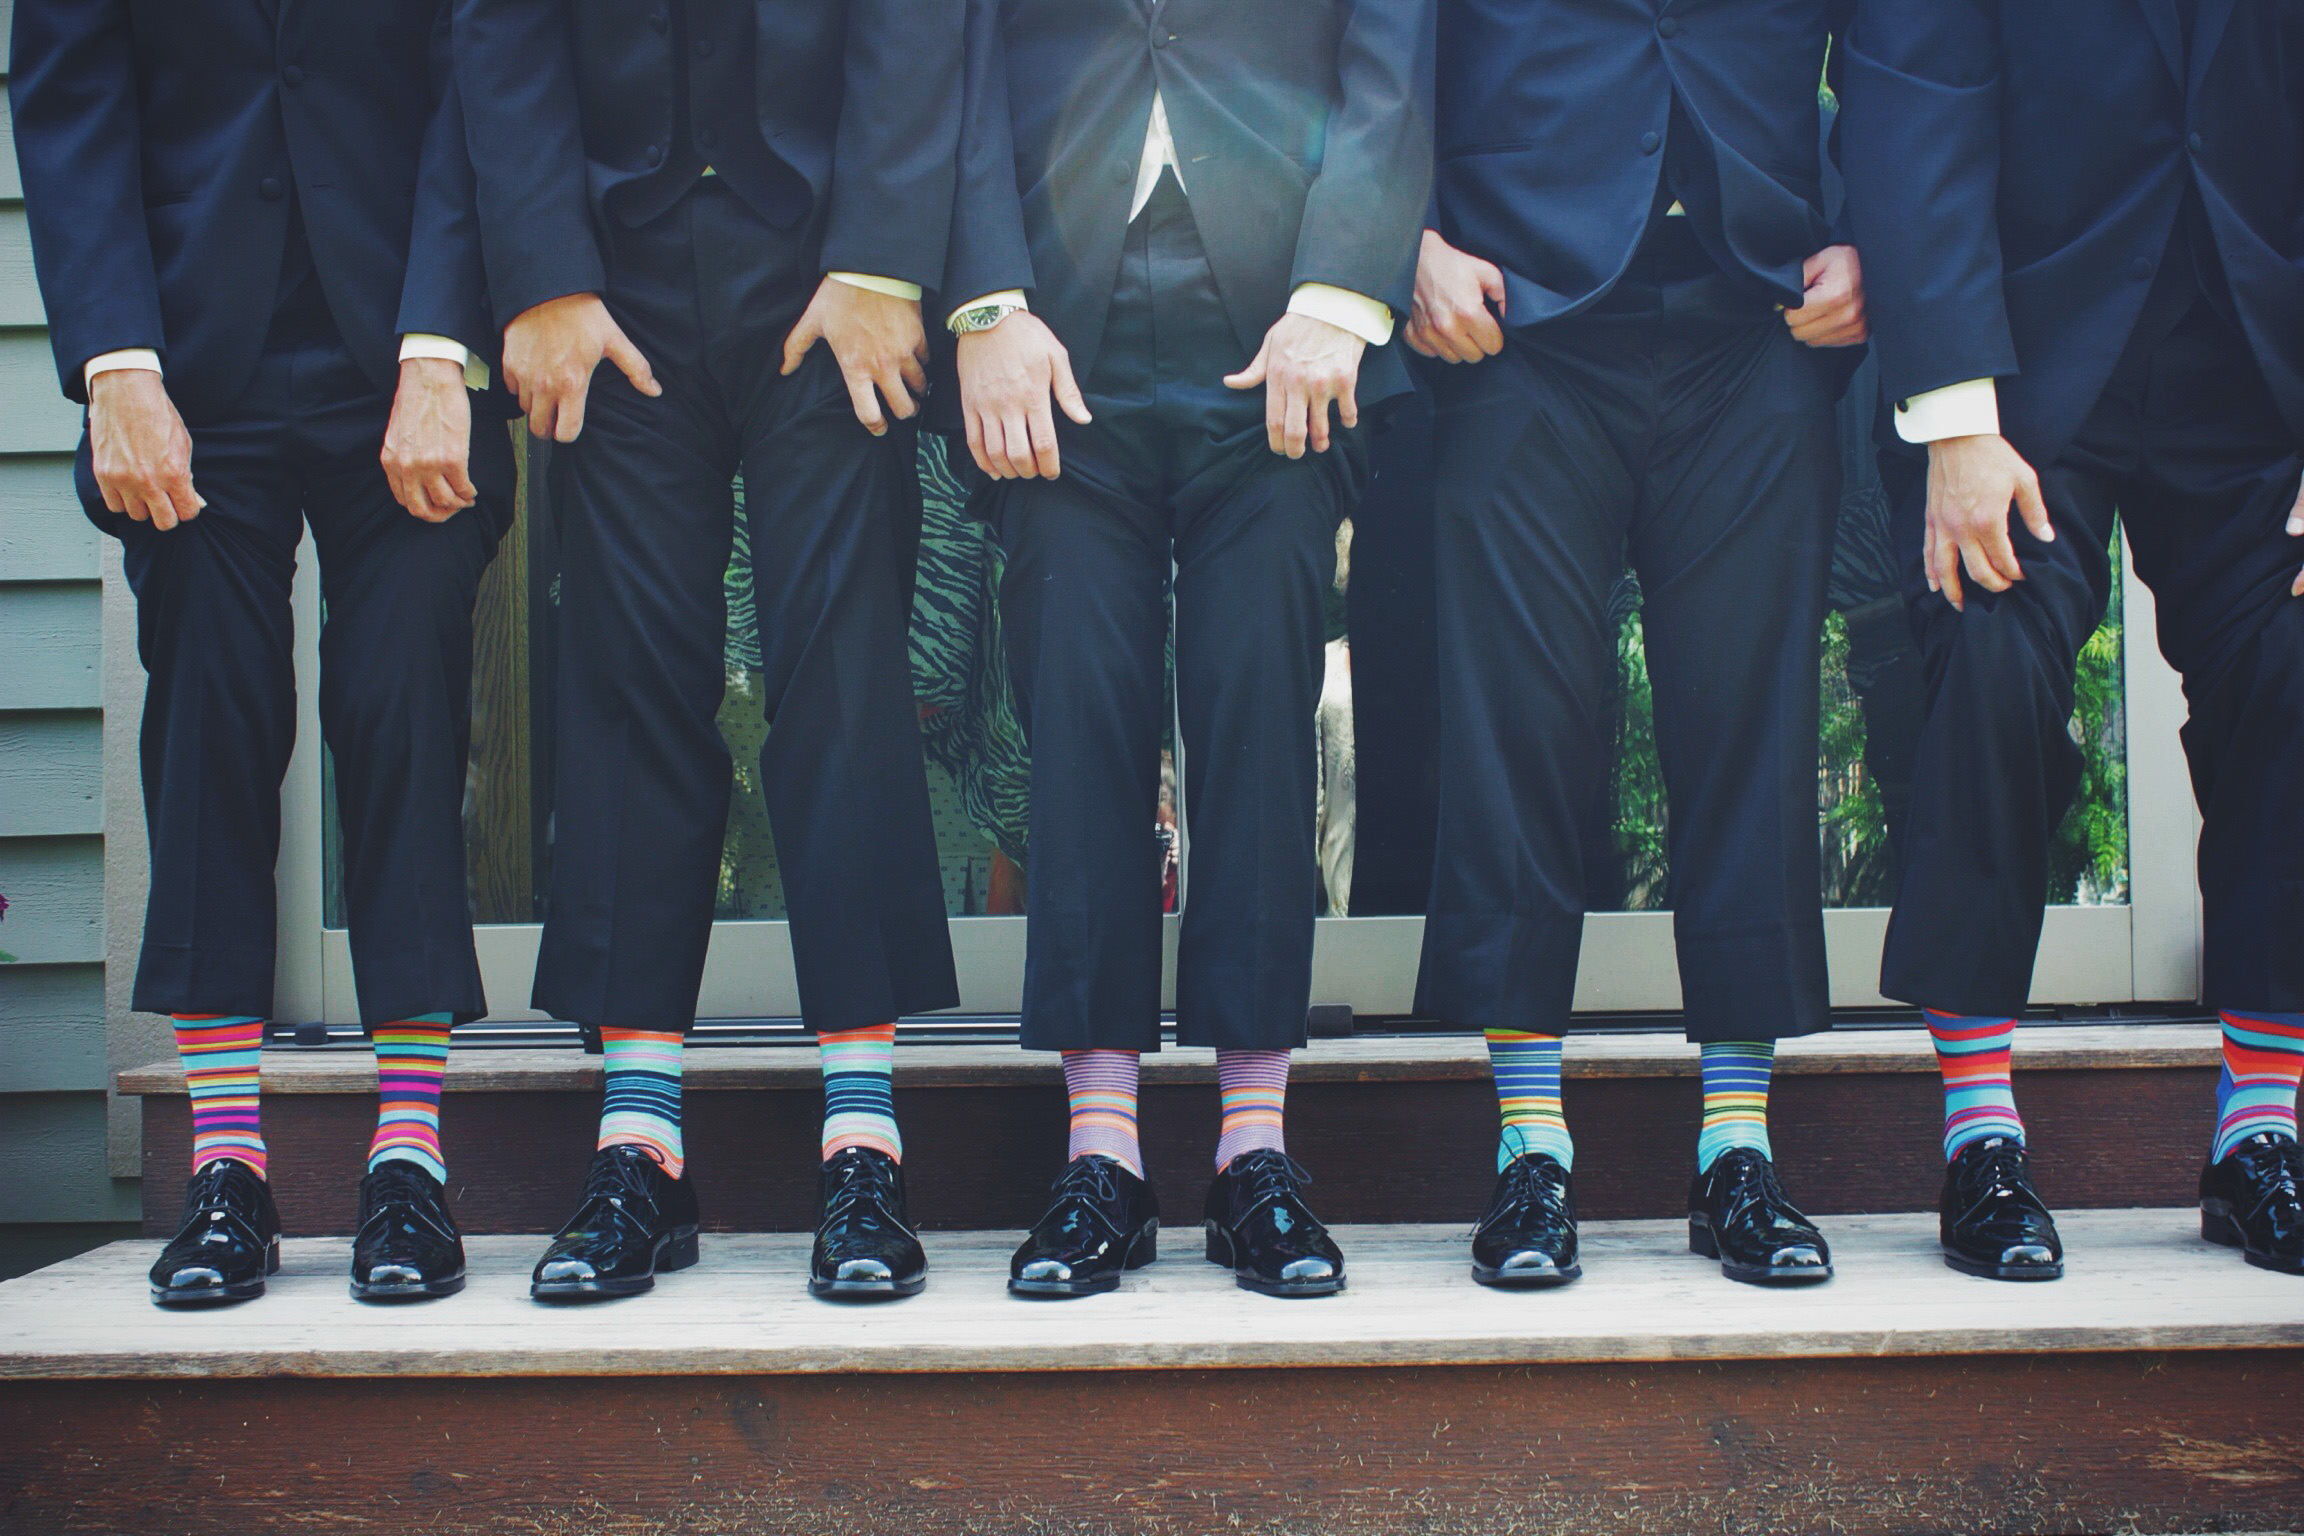 men-in-suits-with-crazy-funky-socks